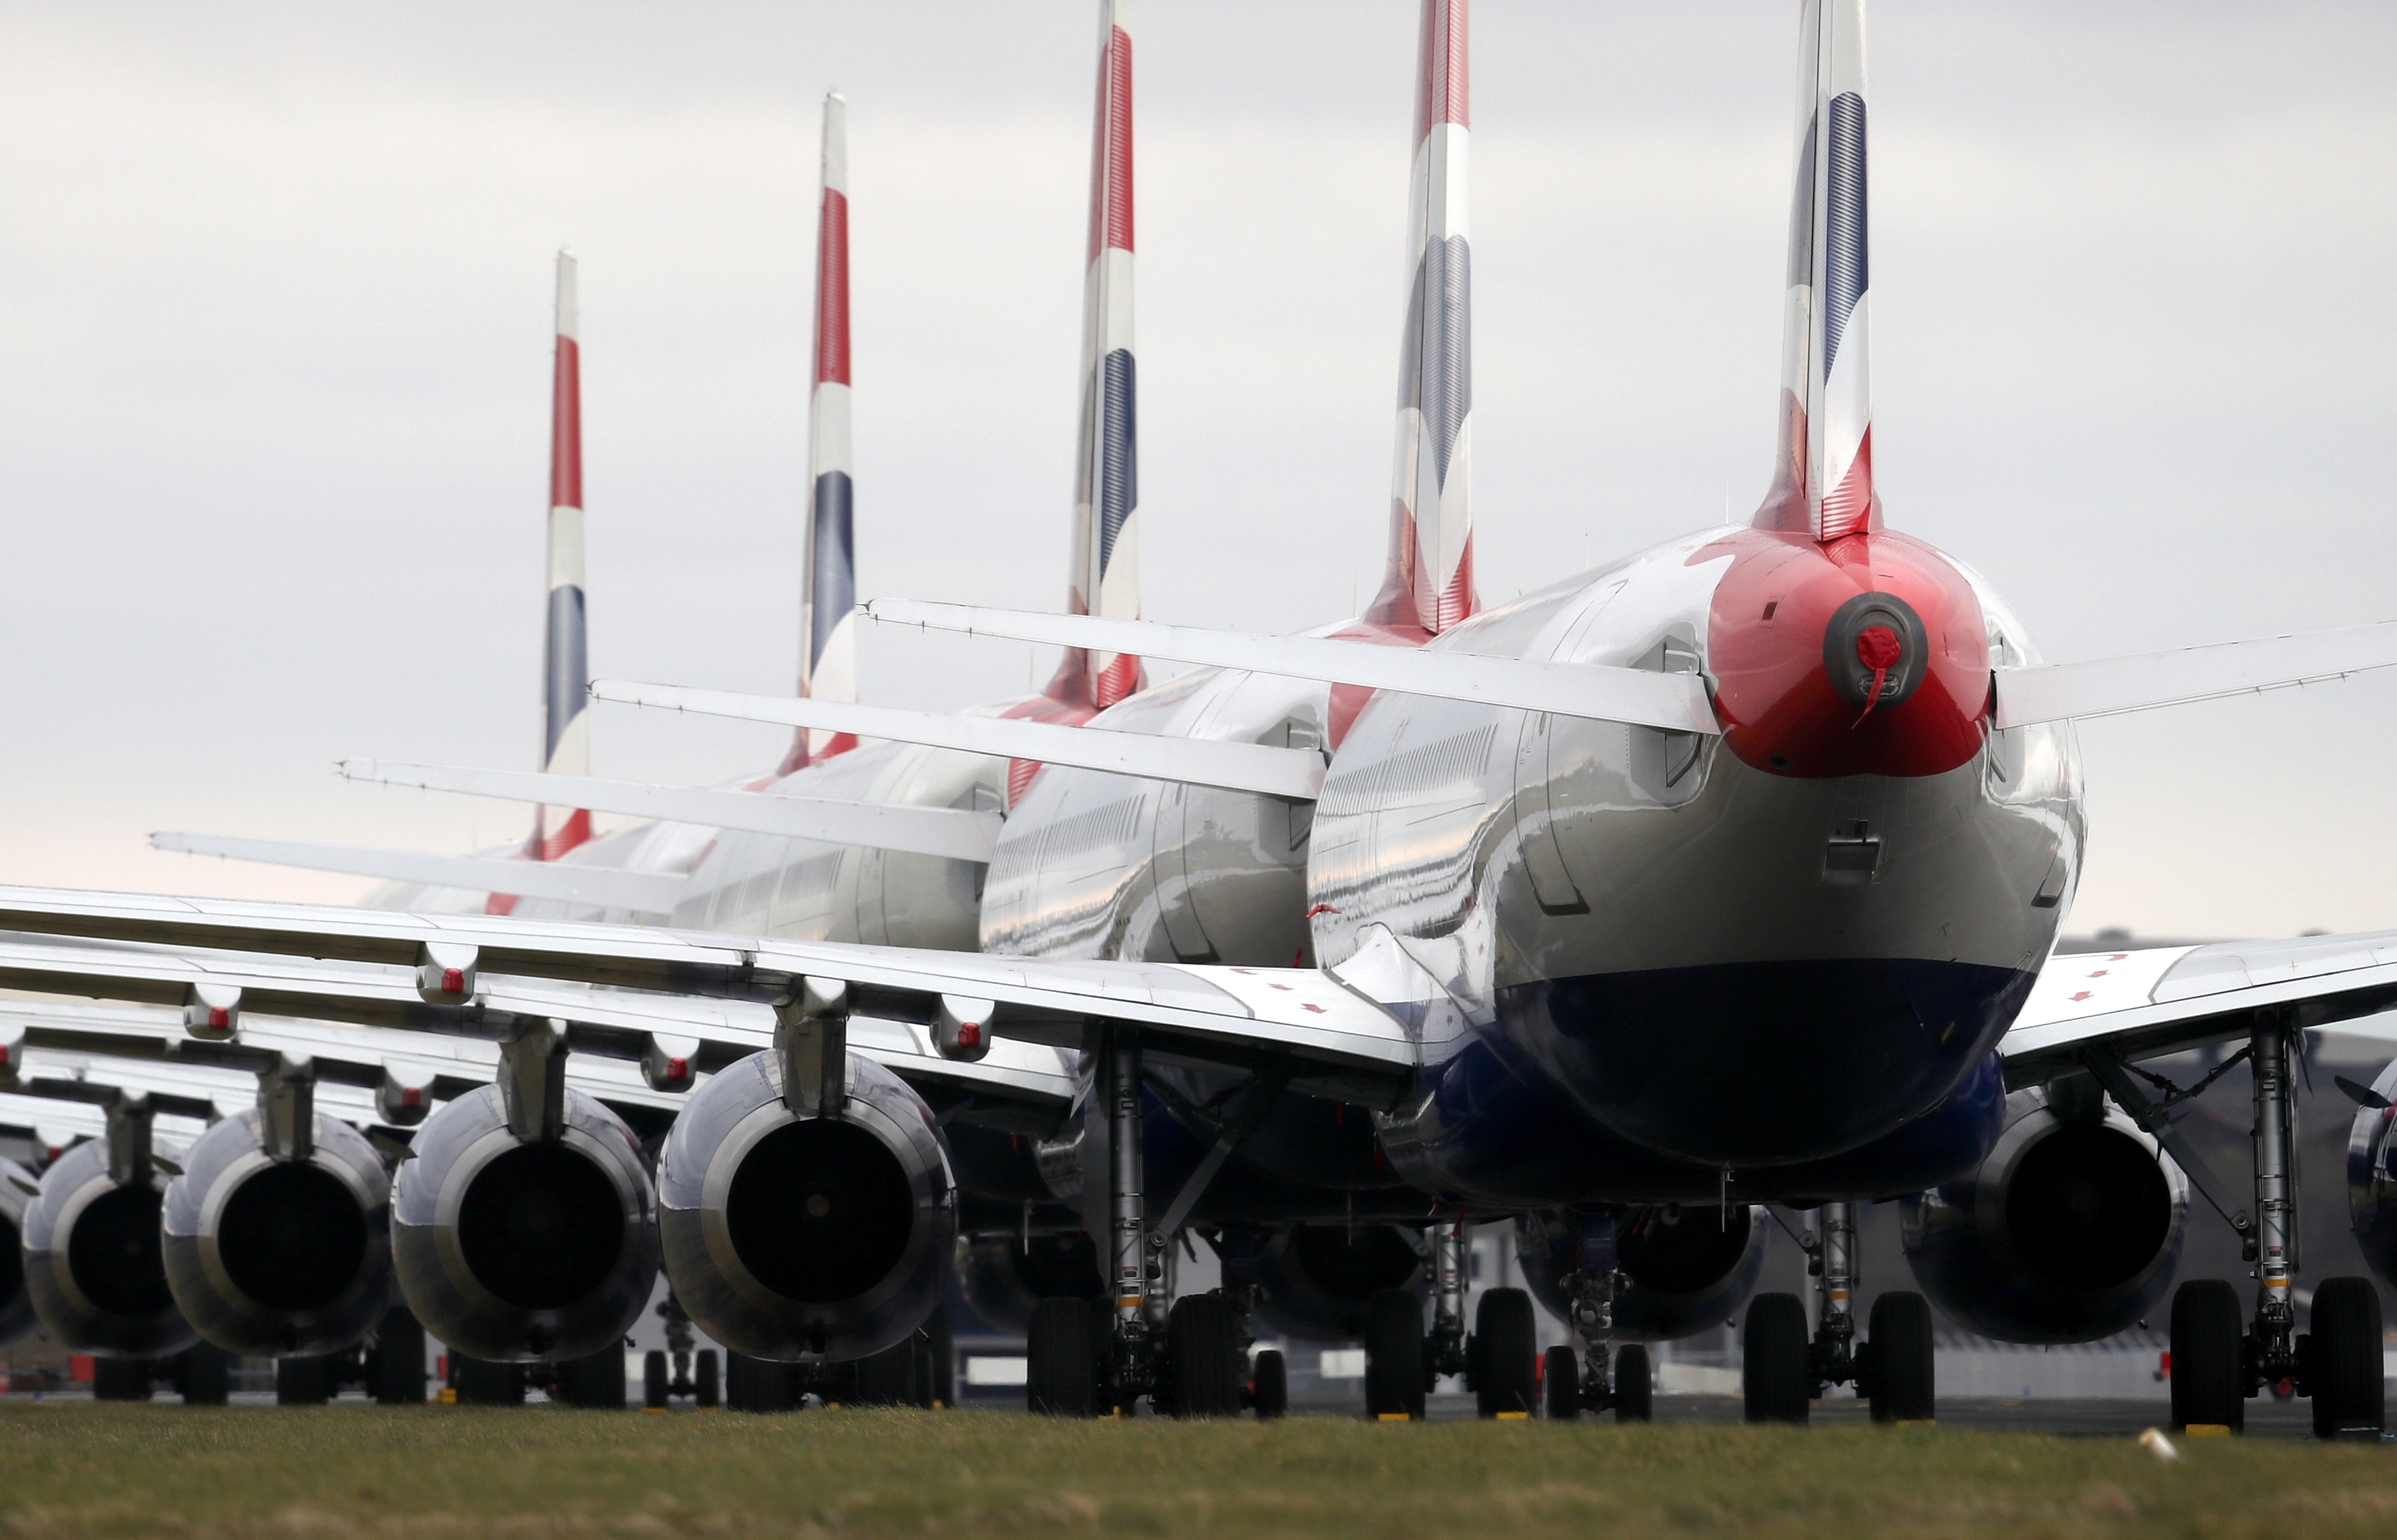 British Airways planes parked on the tarmac at Glasgow Airport after Prime Minister Boris Johnson has put the UK in lockdown to help curb the spread of the coronavirus.